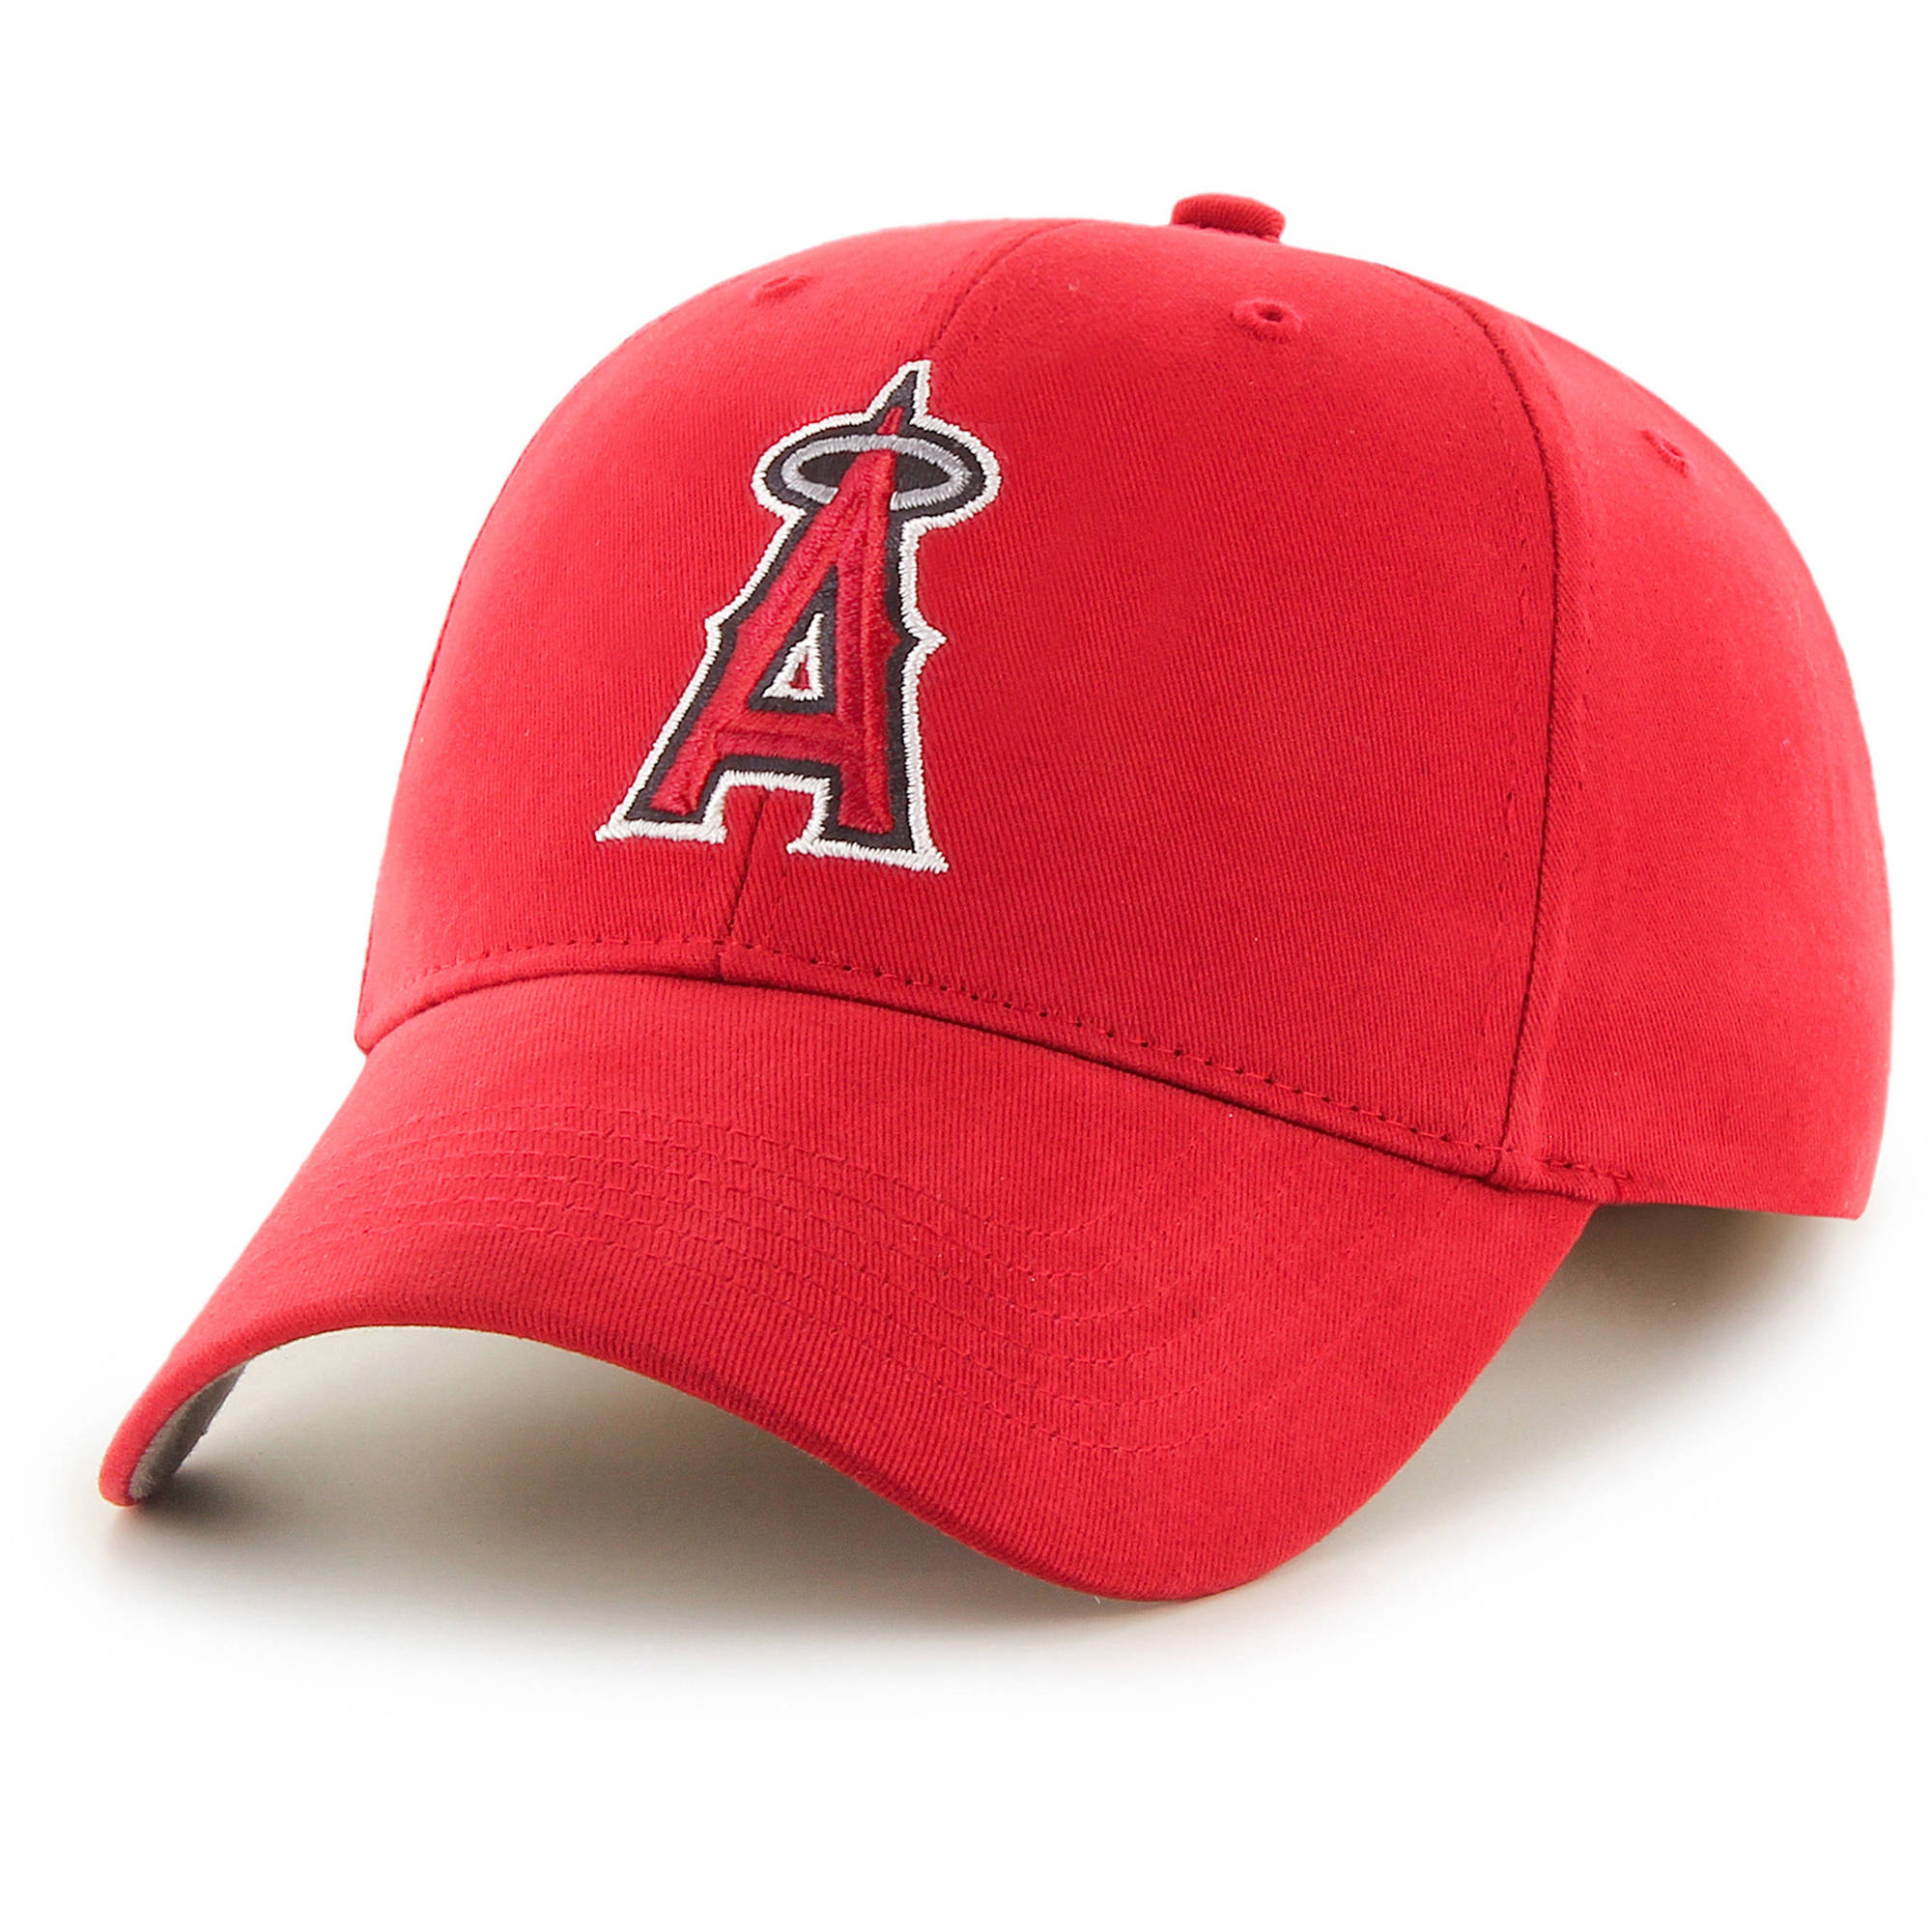 MLB  Los Angeles Angels Basic Cap / Hat  - Fan Favorite